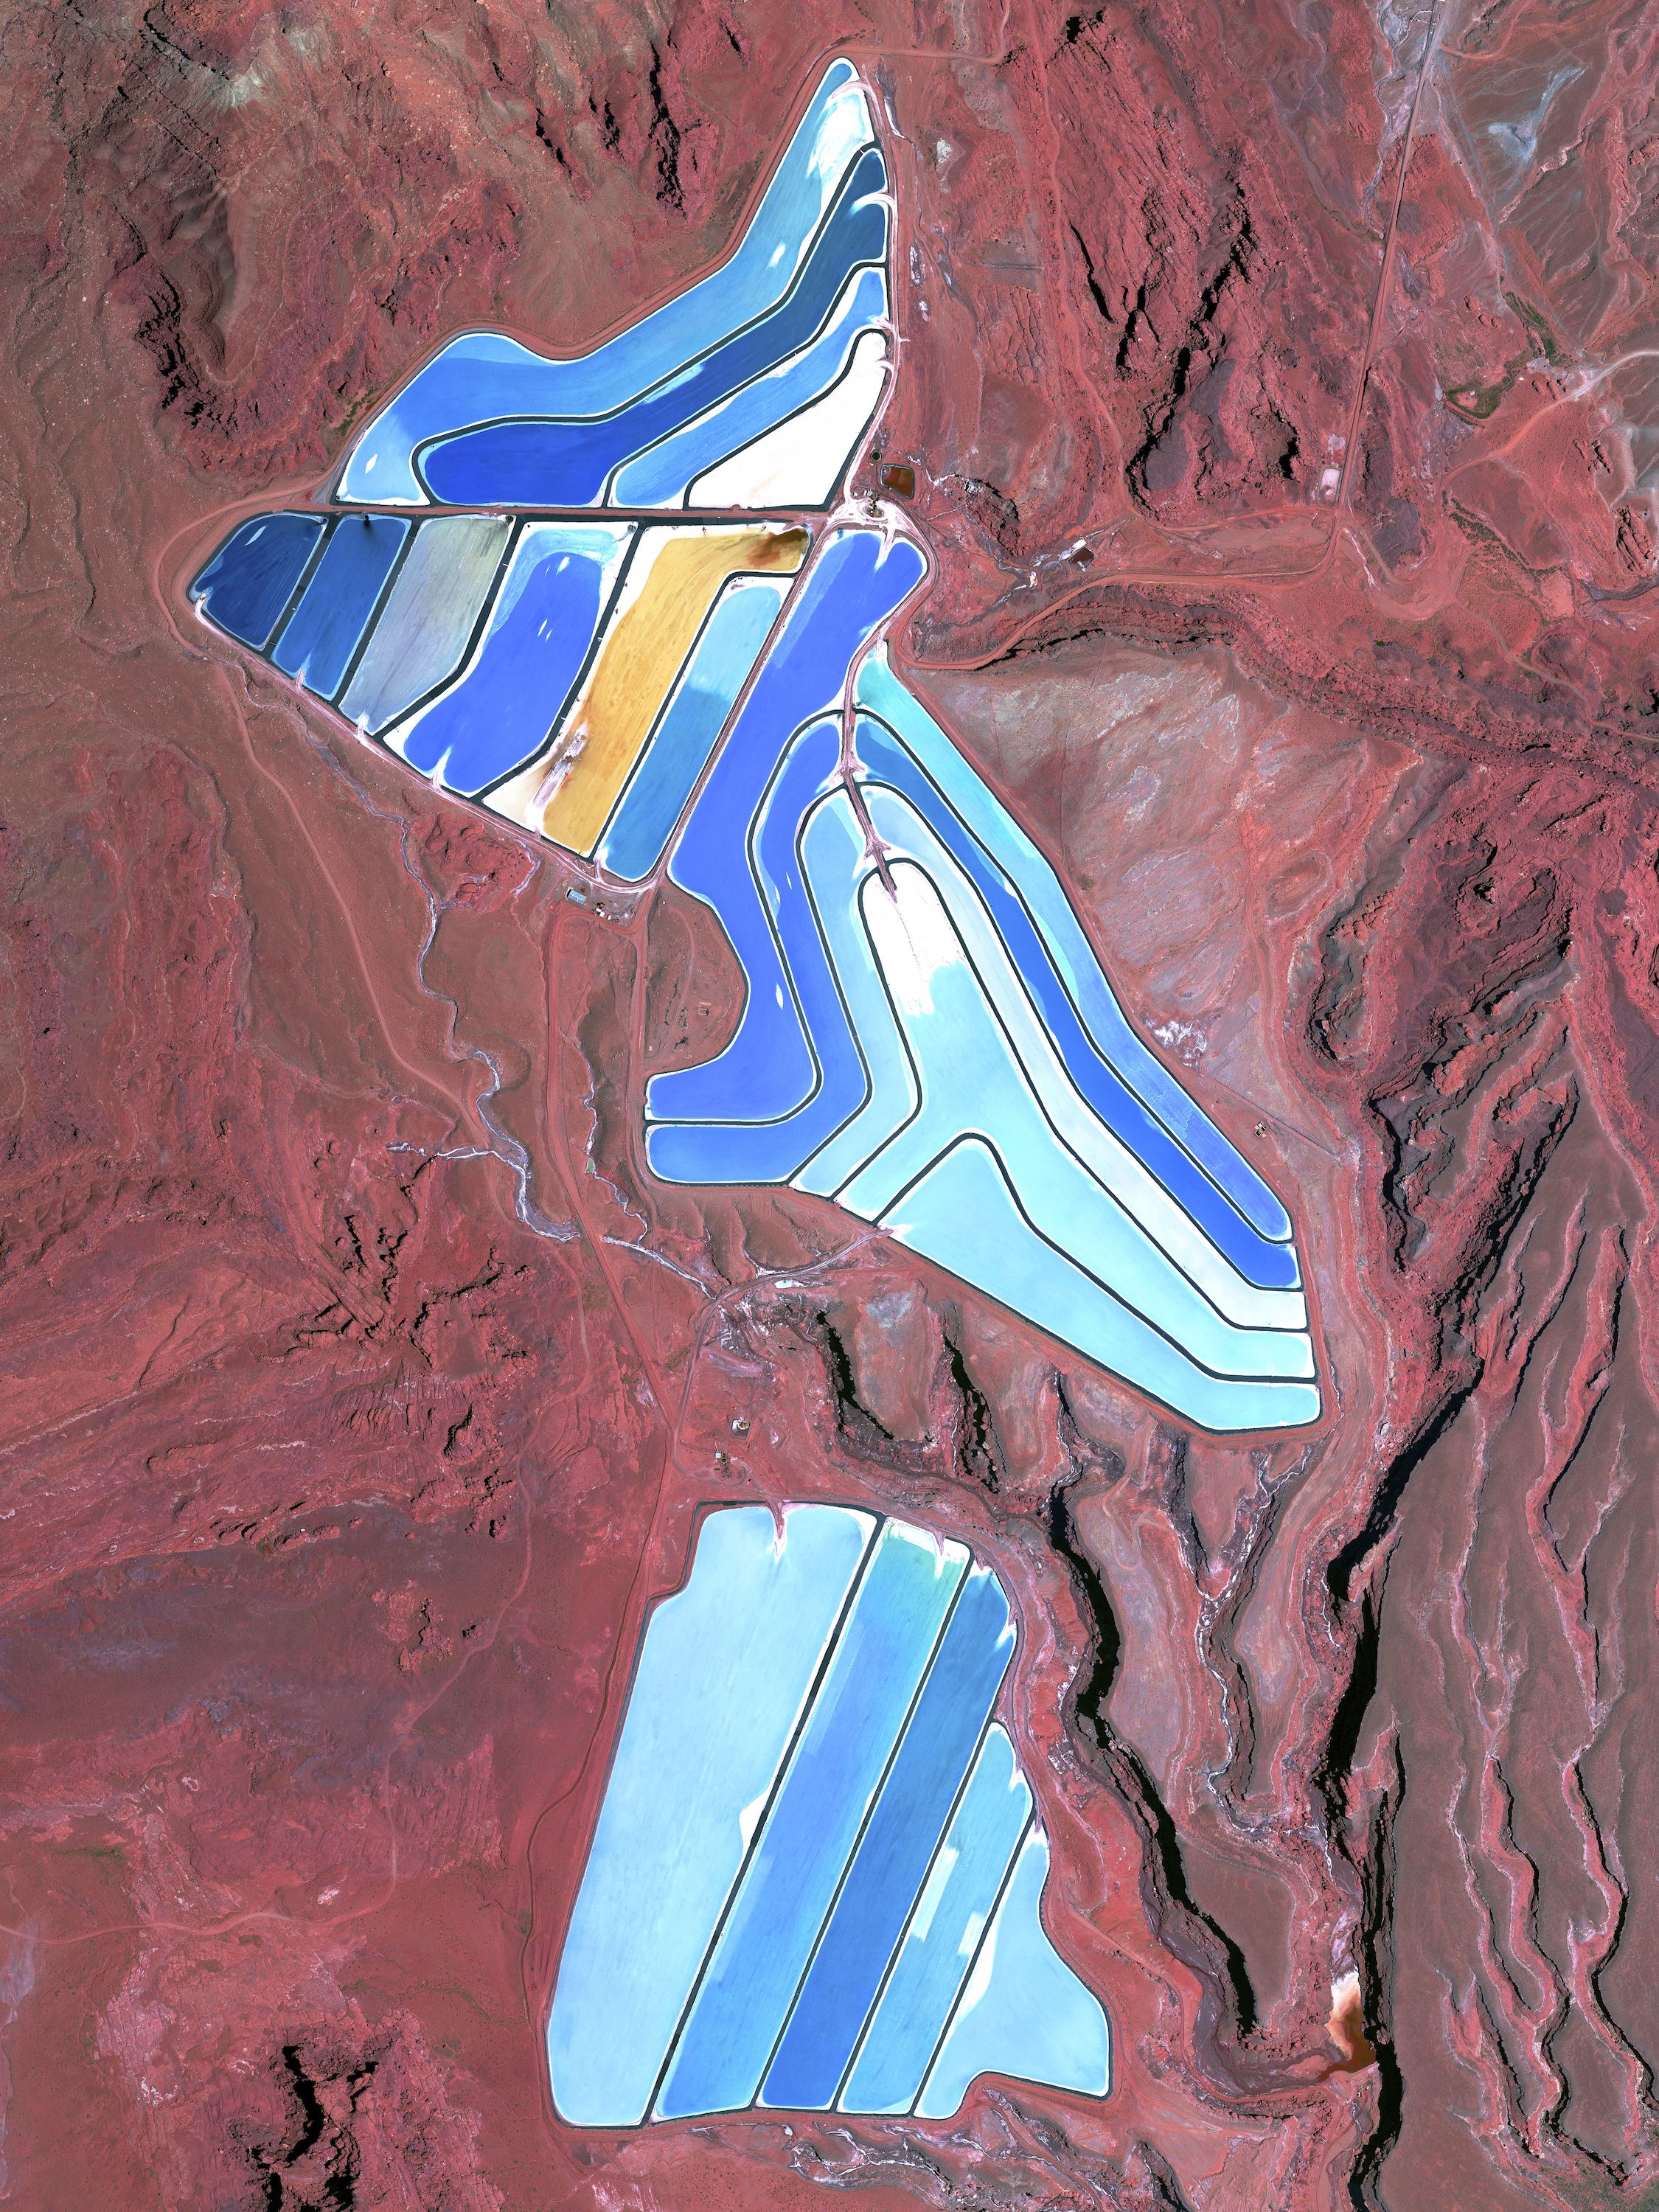 5/30/2015   Evaporation ponds of Intrepid Potash mine    Moab, Utah, USA    38°29'0.16″N 109°40'52.80″W      The Intrepid Potash Mine in Moab, Utah, USAproduces muriate of potash, a potassium-containing salt used widely by farmers in fertilizer.  The salt is pumped to the surface from underground deposits and driedin massive solar ponds that vibrantly extend across the landscape.  As the water evaporates over the course of 300 days, the salts crystallize out. So why are you seeing such vibrant colors?The water is dyed bright blue to reduce the amount of time it takes for the potash to crystallize; darker water absorbs more sunlight and heat.